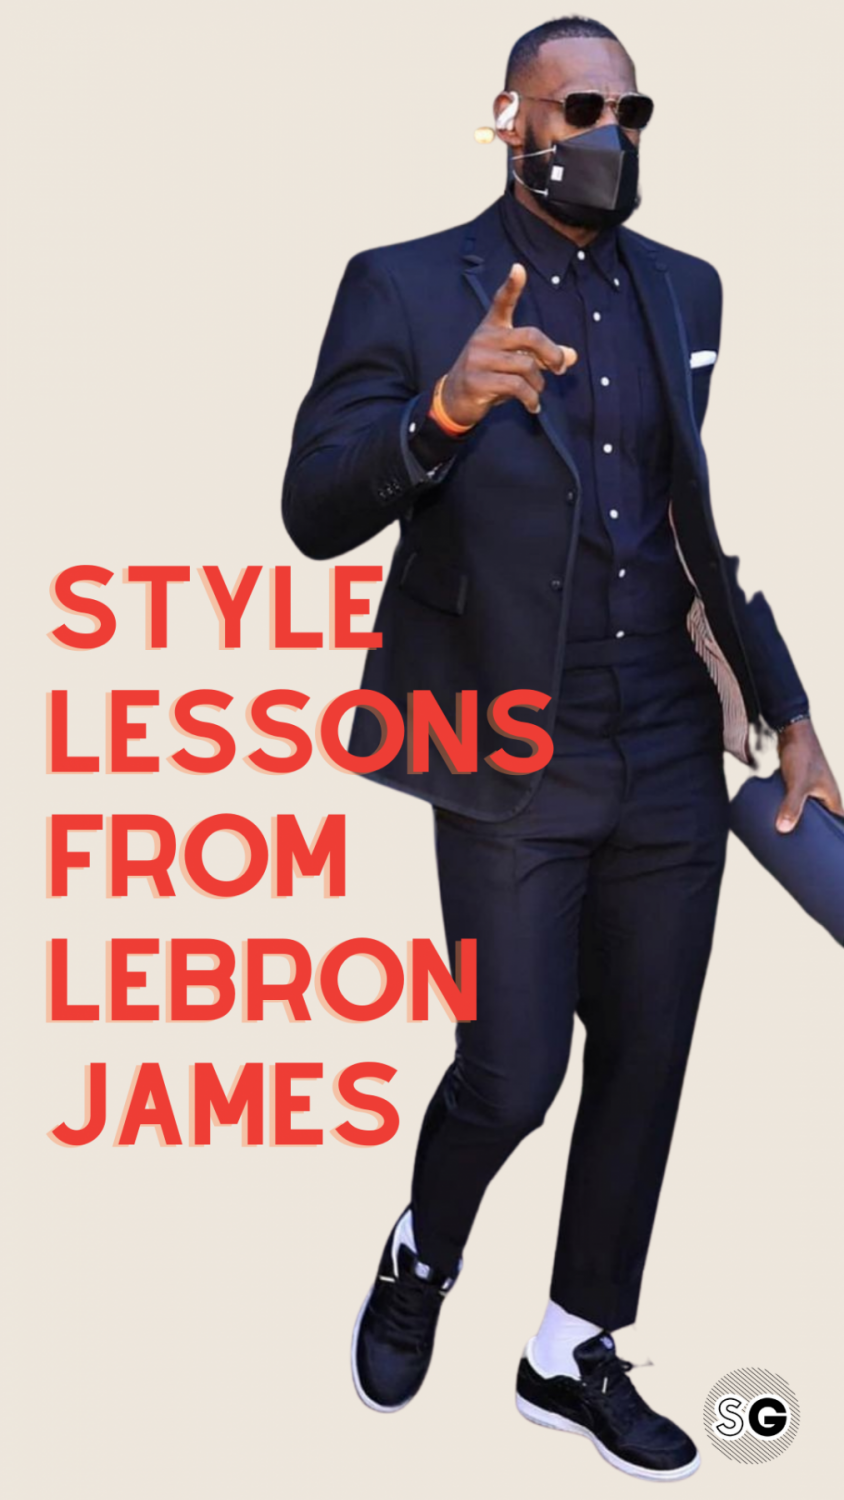 style lessons from LeBron James